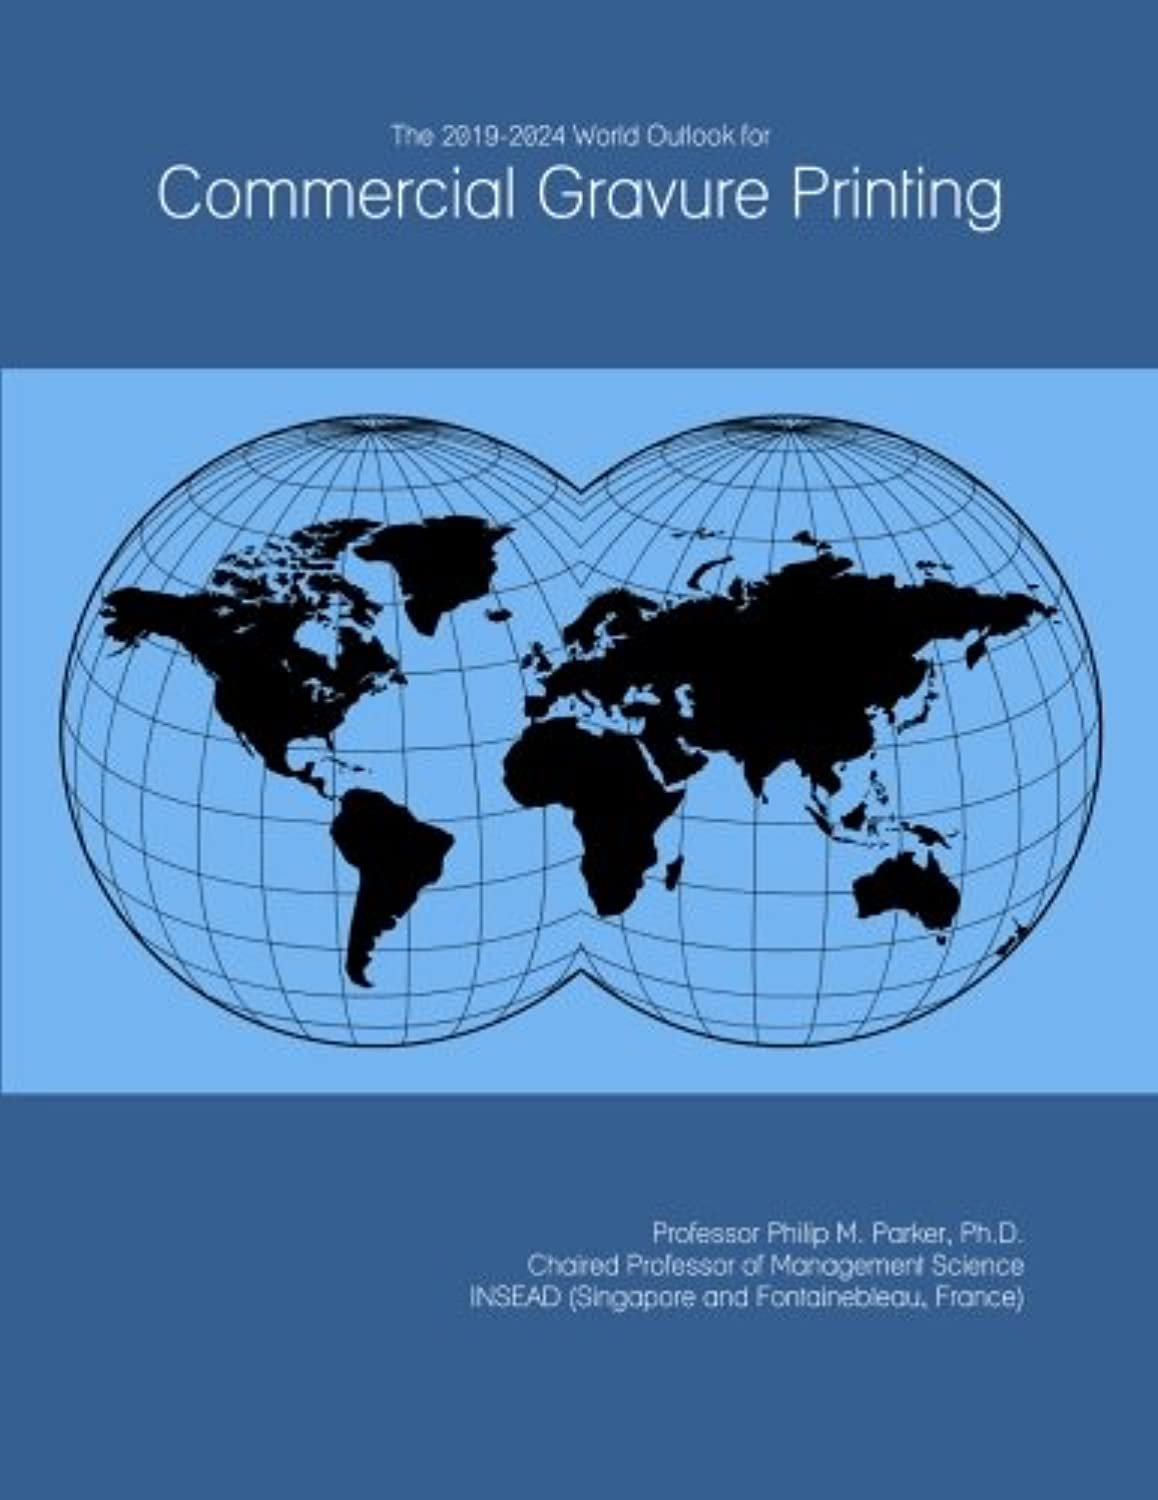 The 2019-2024 World Outlook for Commercial Gravure Printing